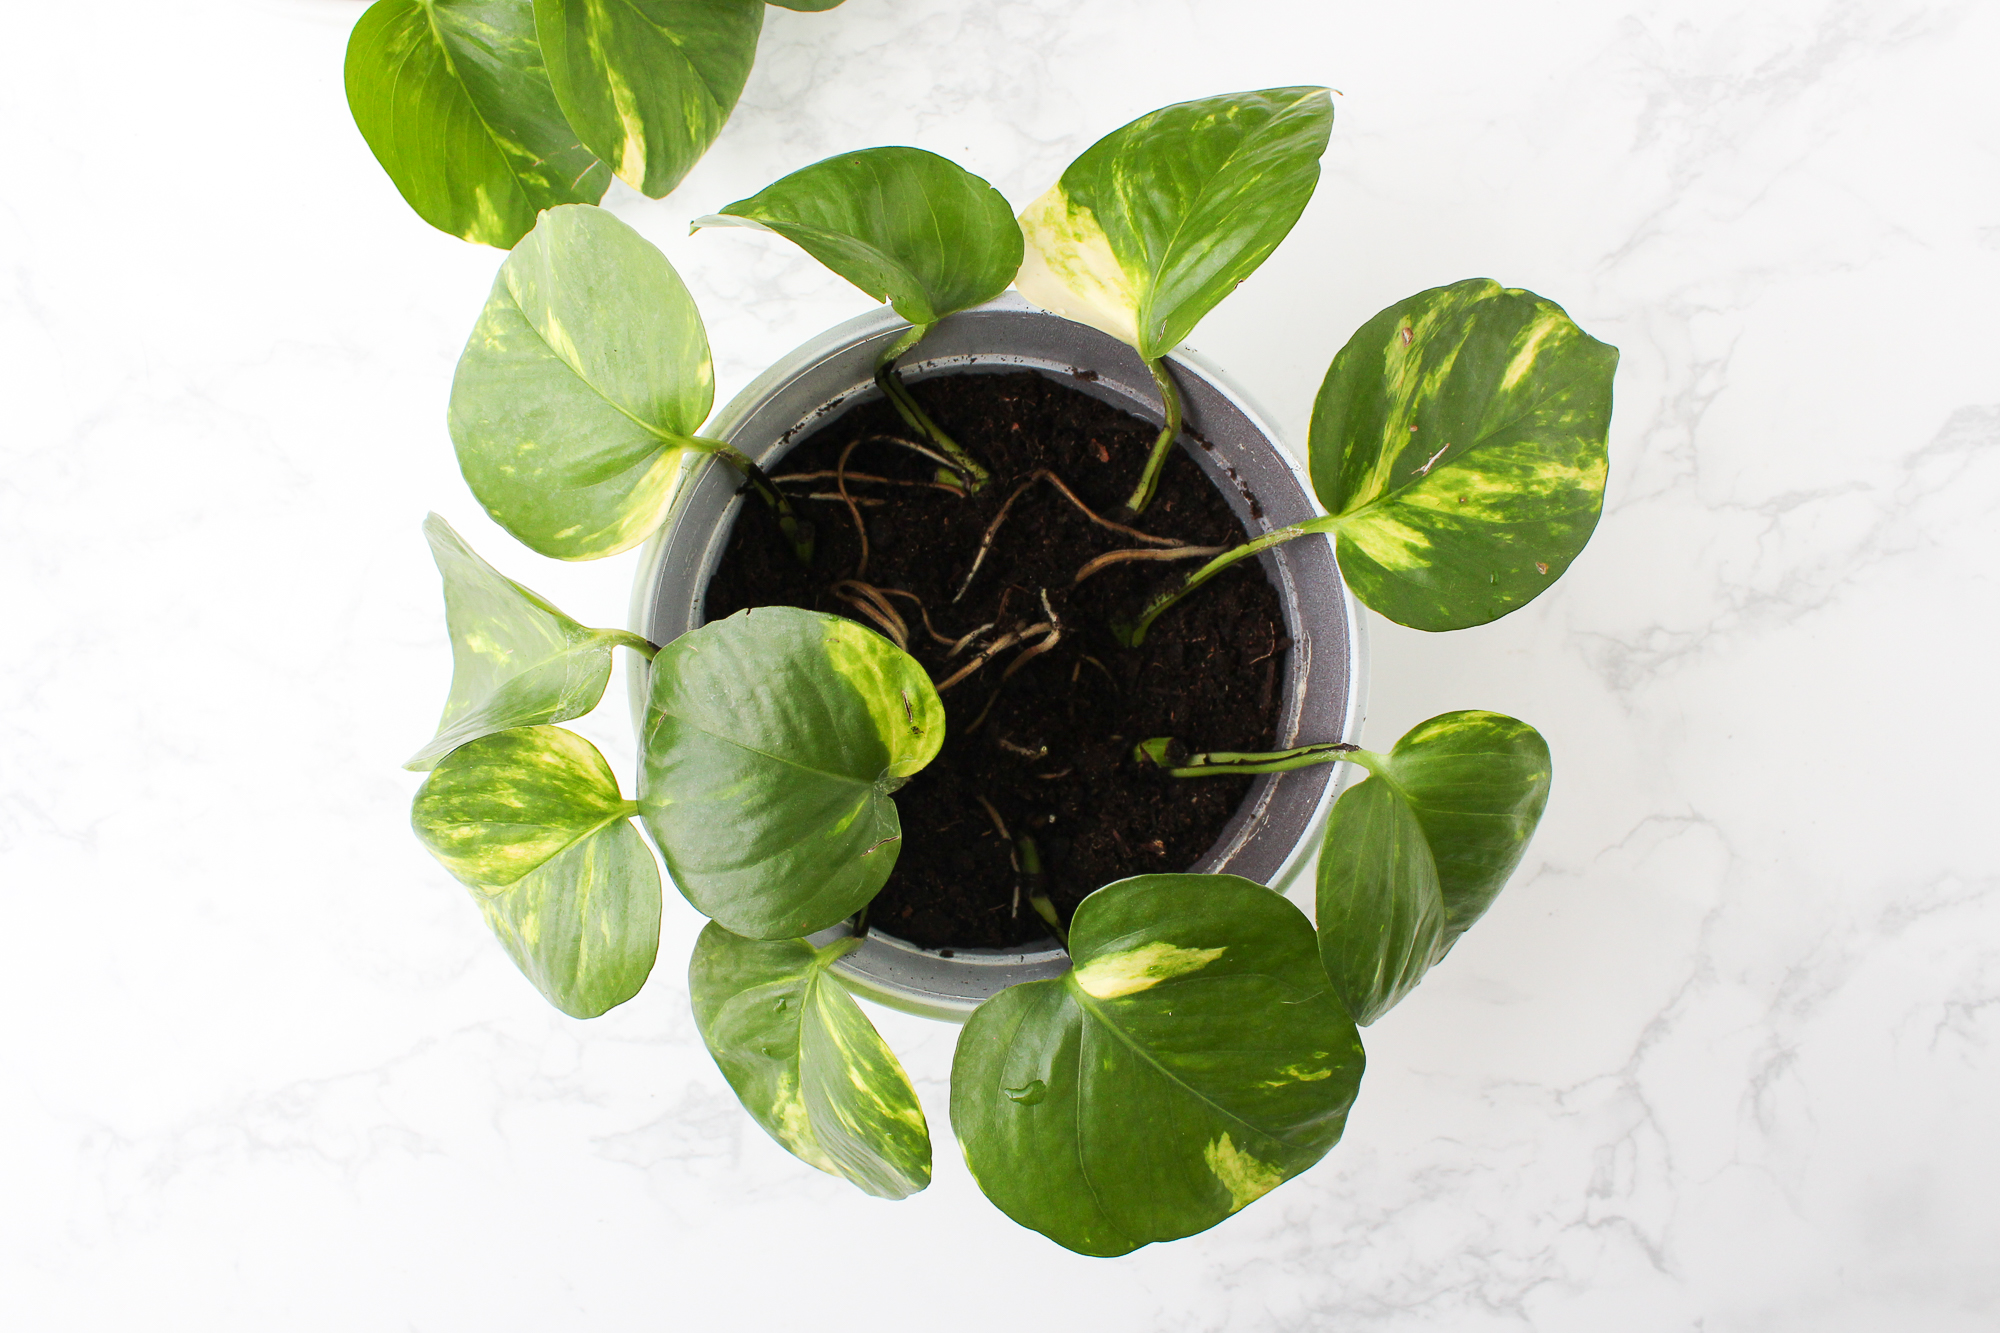 How To Propagate A Pothos Plant 6 Steps With Pictures Instructables